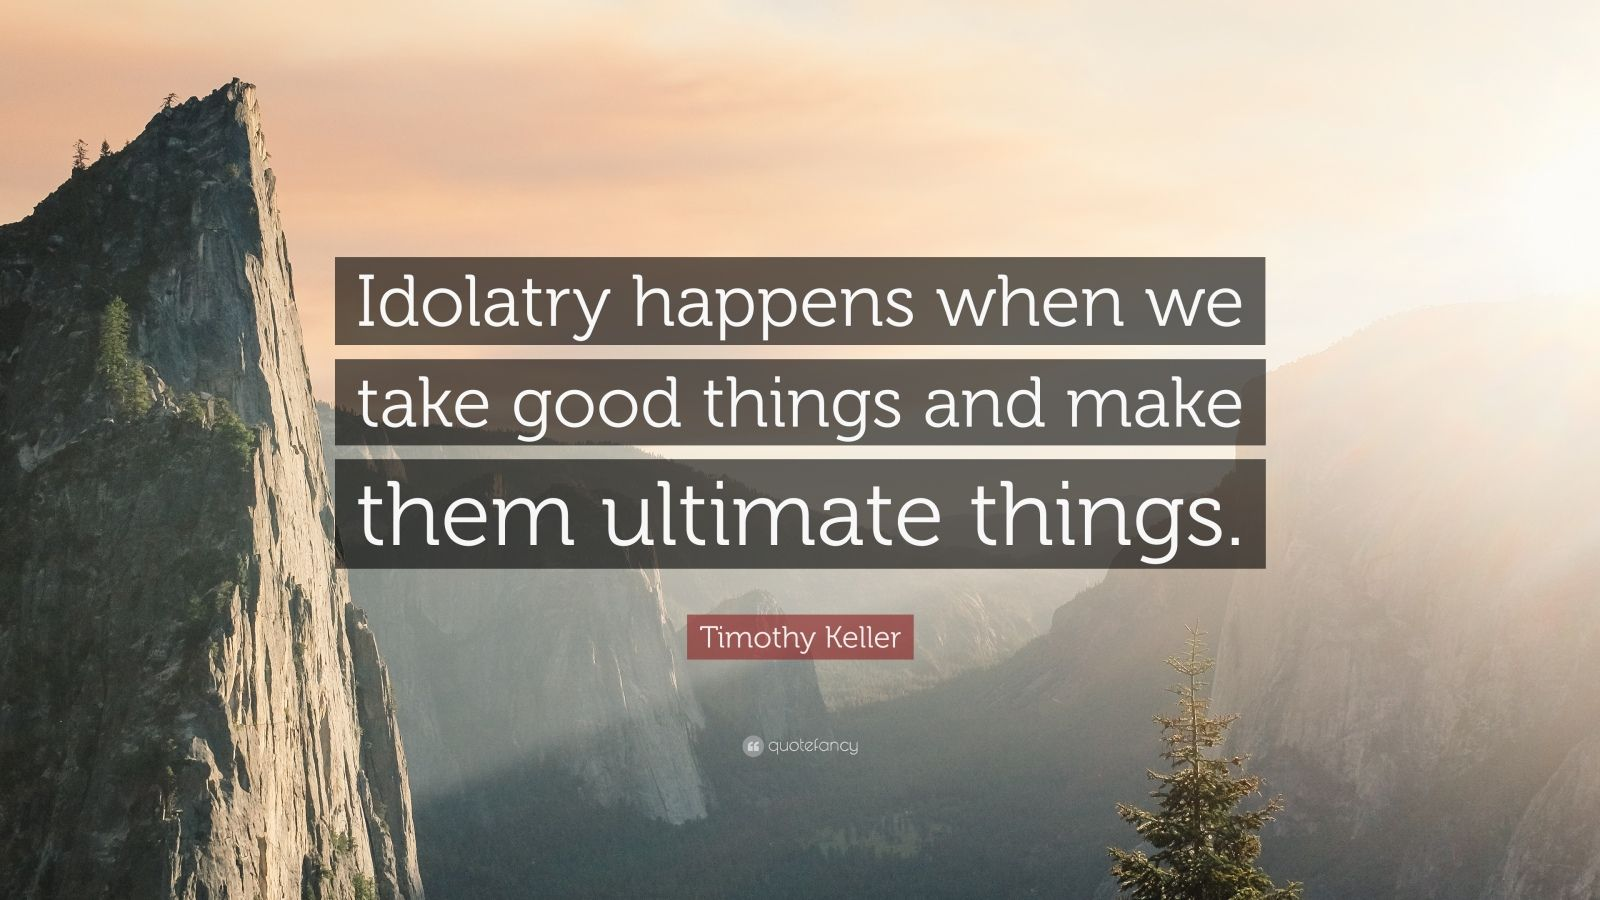 """Timothy Keller Quote: """"Idolatry happens when we take good things and make them ultimate things."""""""